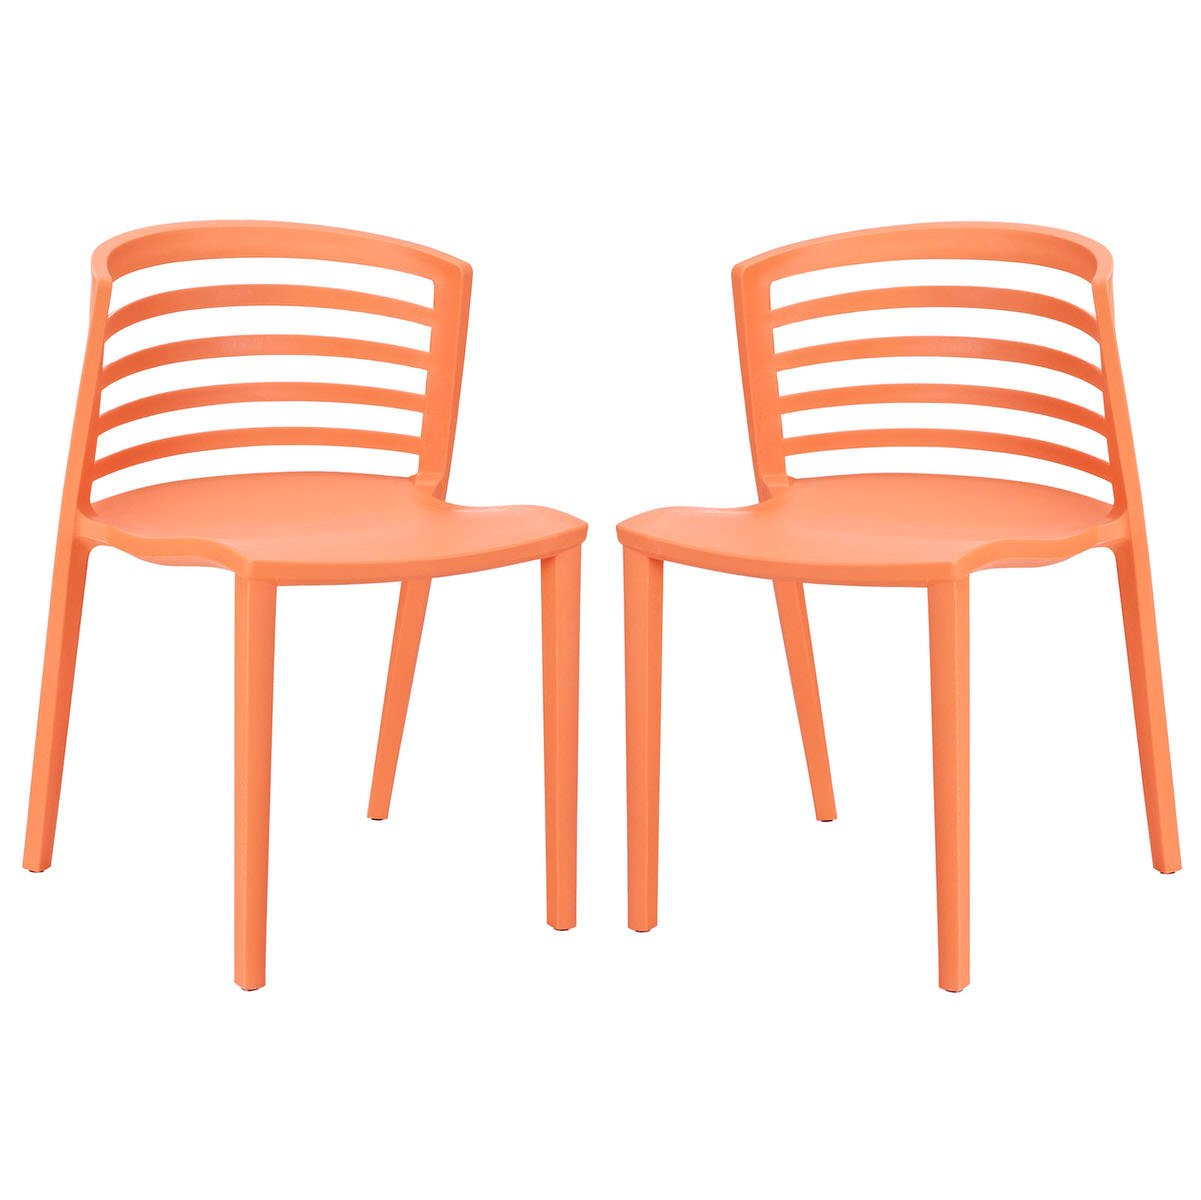 Astonishing Curvy Dining Chairs Set Of 2 Orange By Modway Camellatalisay Diy Chair Ideas Camellatalisaycom